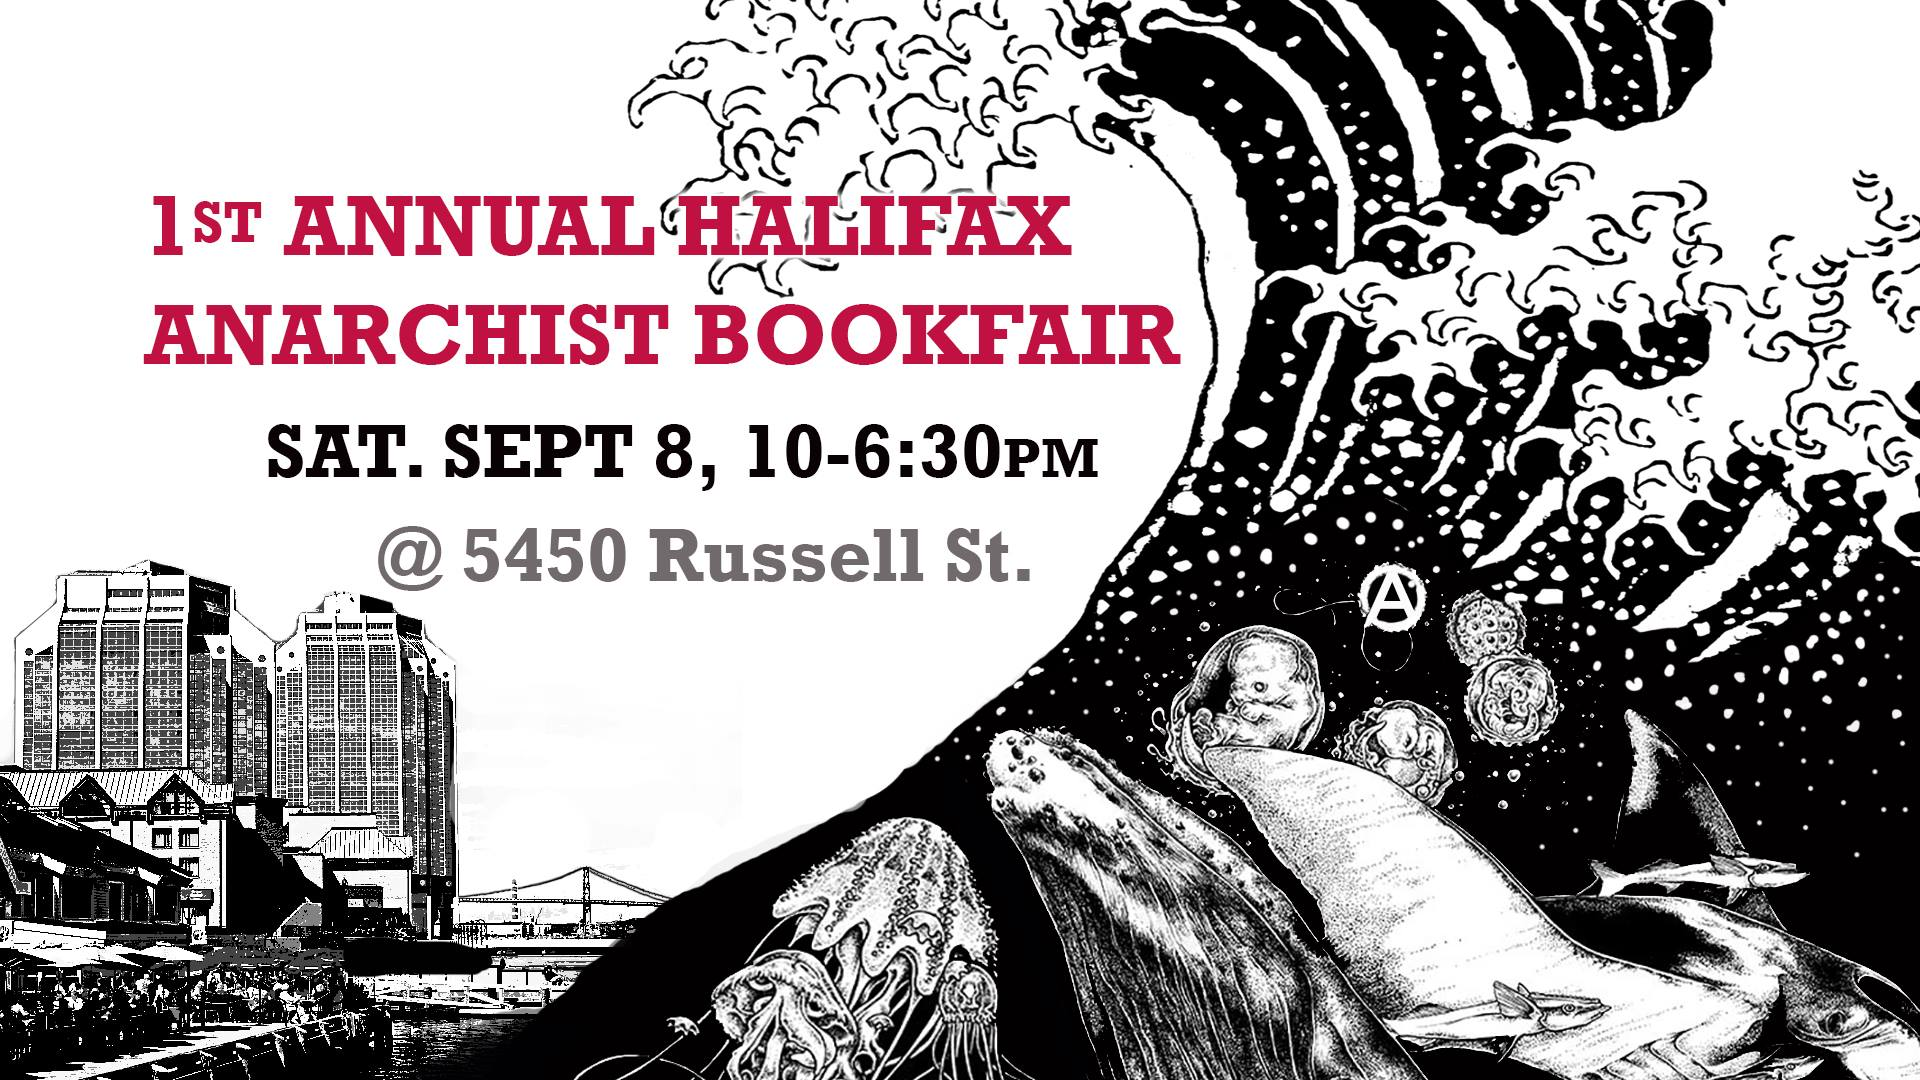 halifaxanarchistbookfair